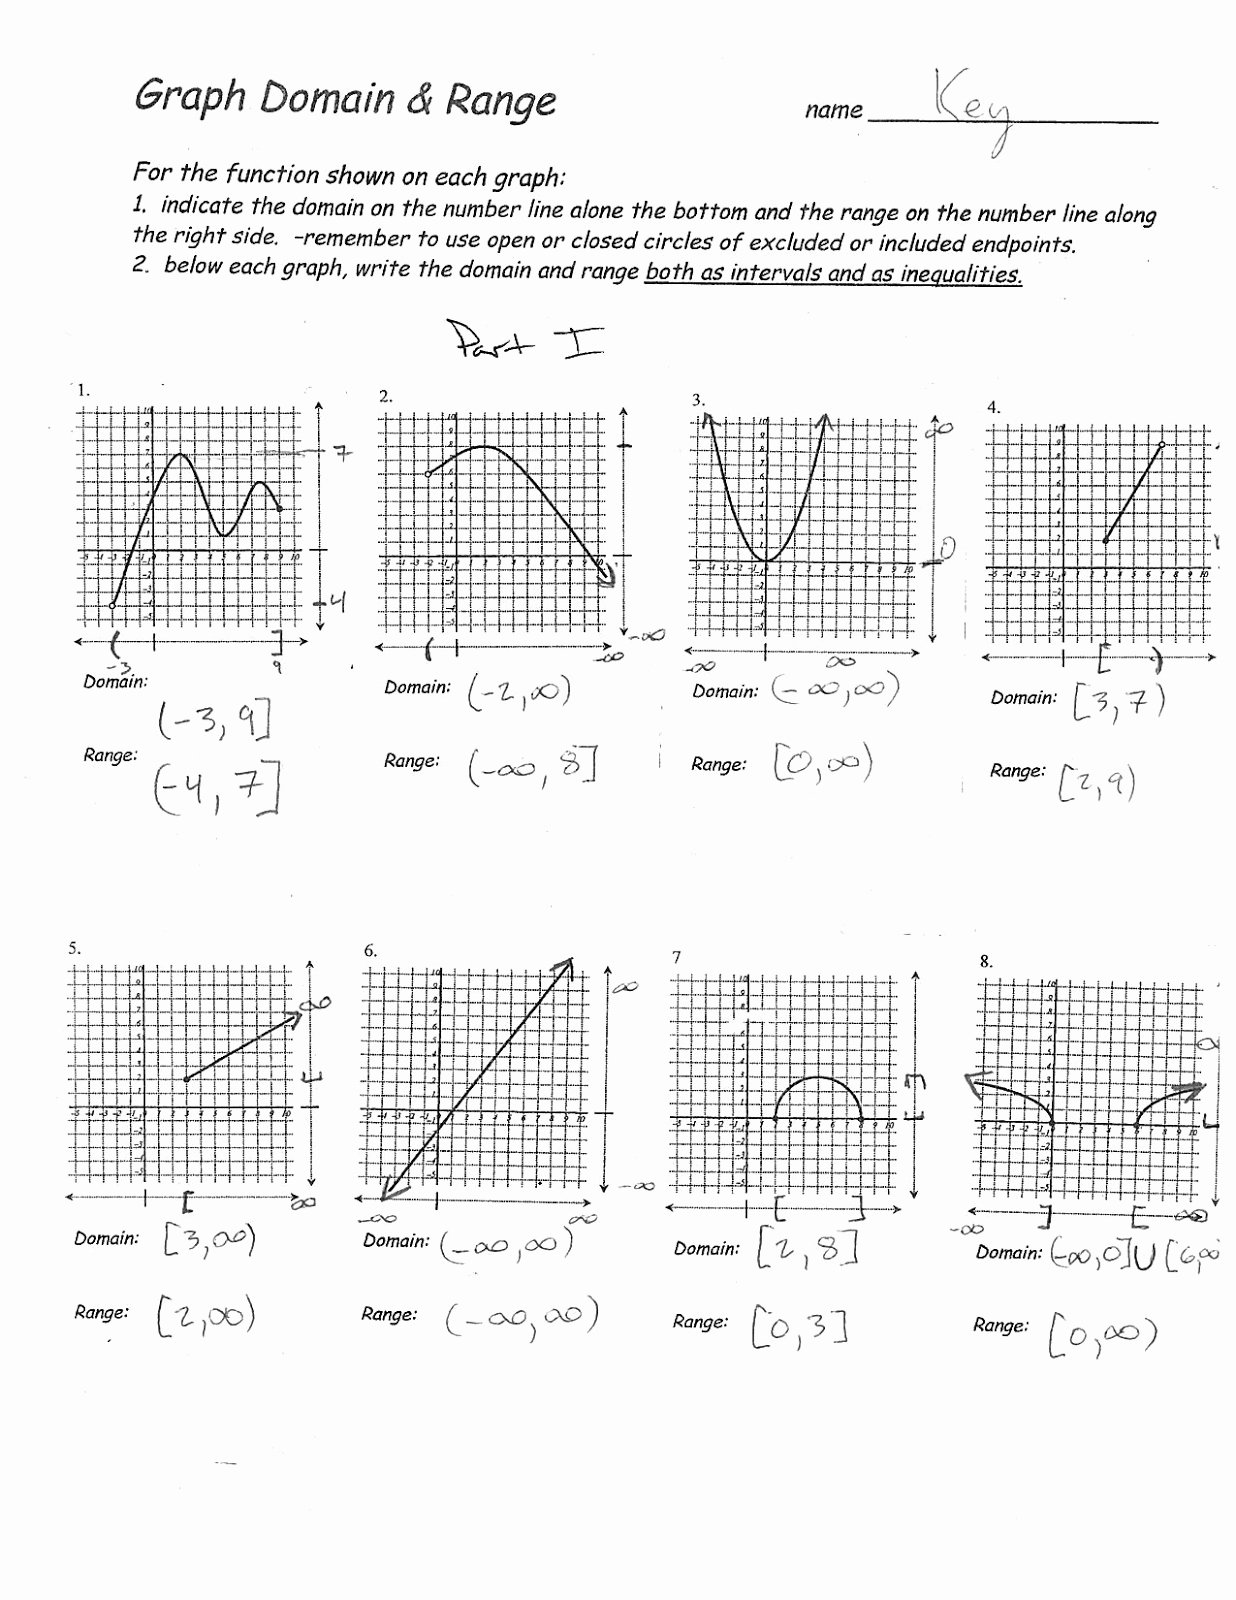 Domain and Range Worksheet 1 Elegant Mr Suominen S Math Homepage College Mathematics 11 29 12